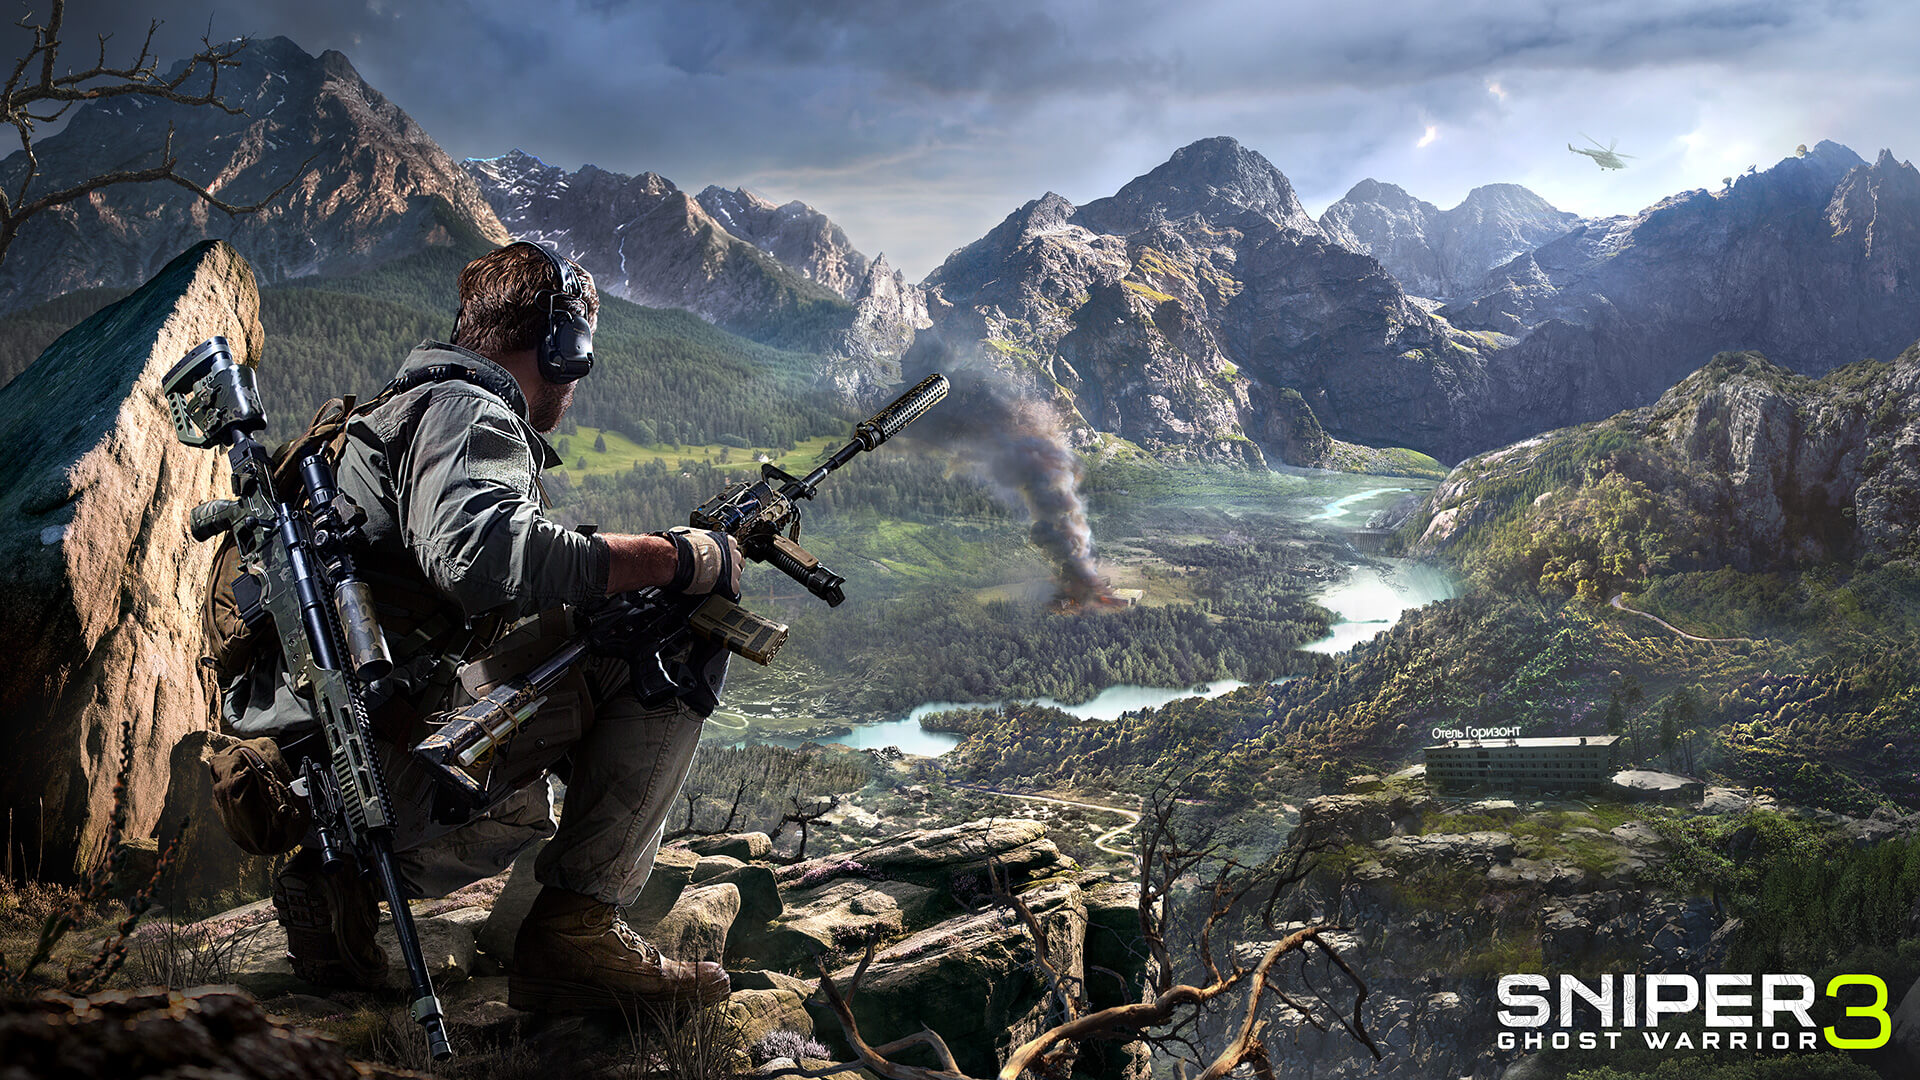 Sniper: Ghost Warrior 3 Open Beta Registration for PC Available Now